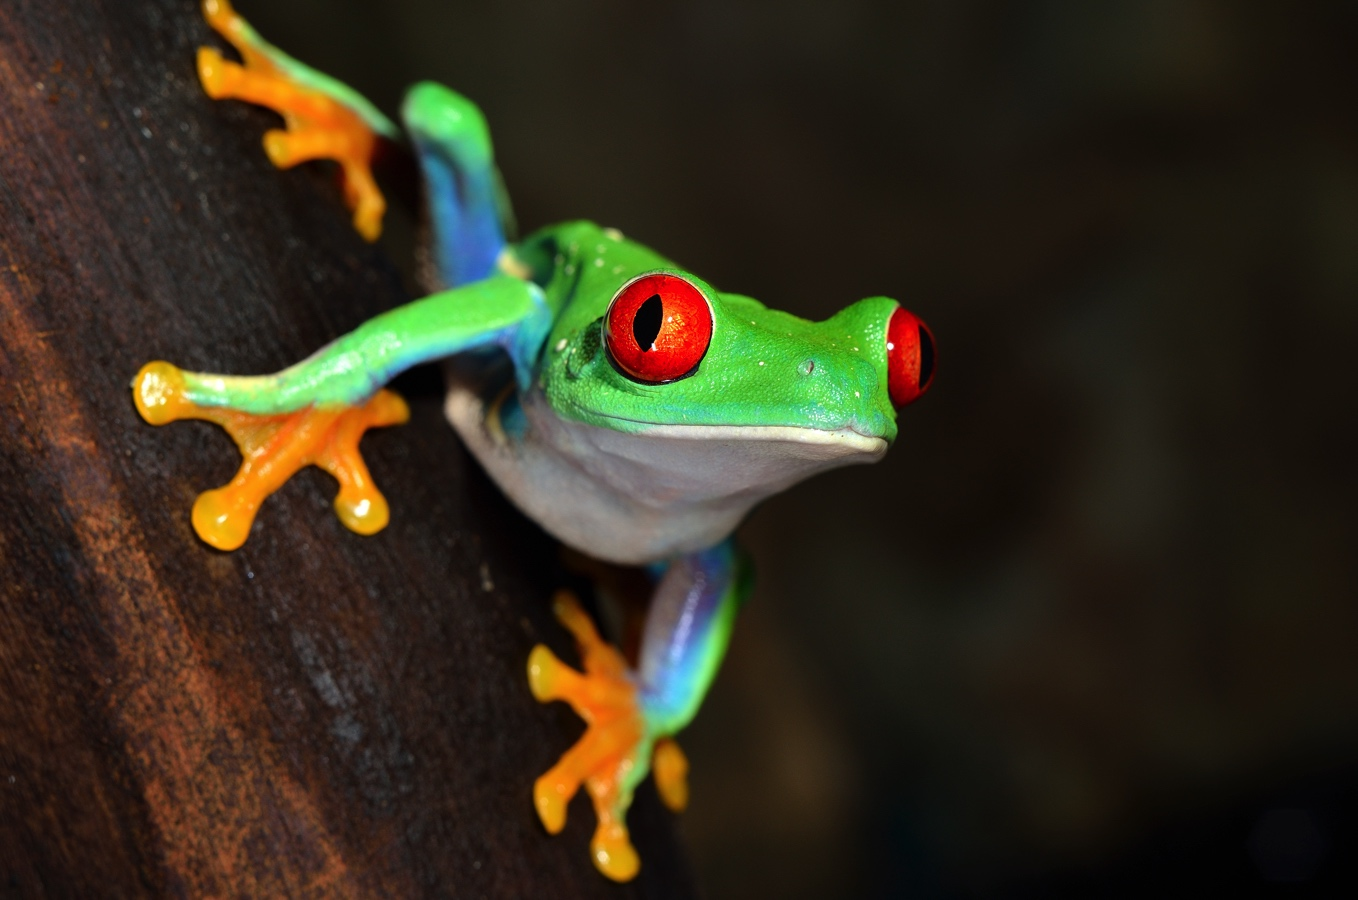 Save the trees and the frogs will also be saved